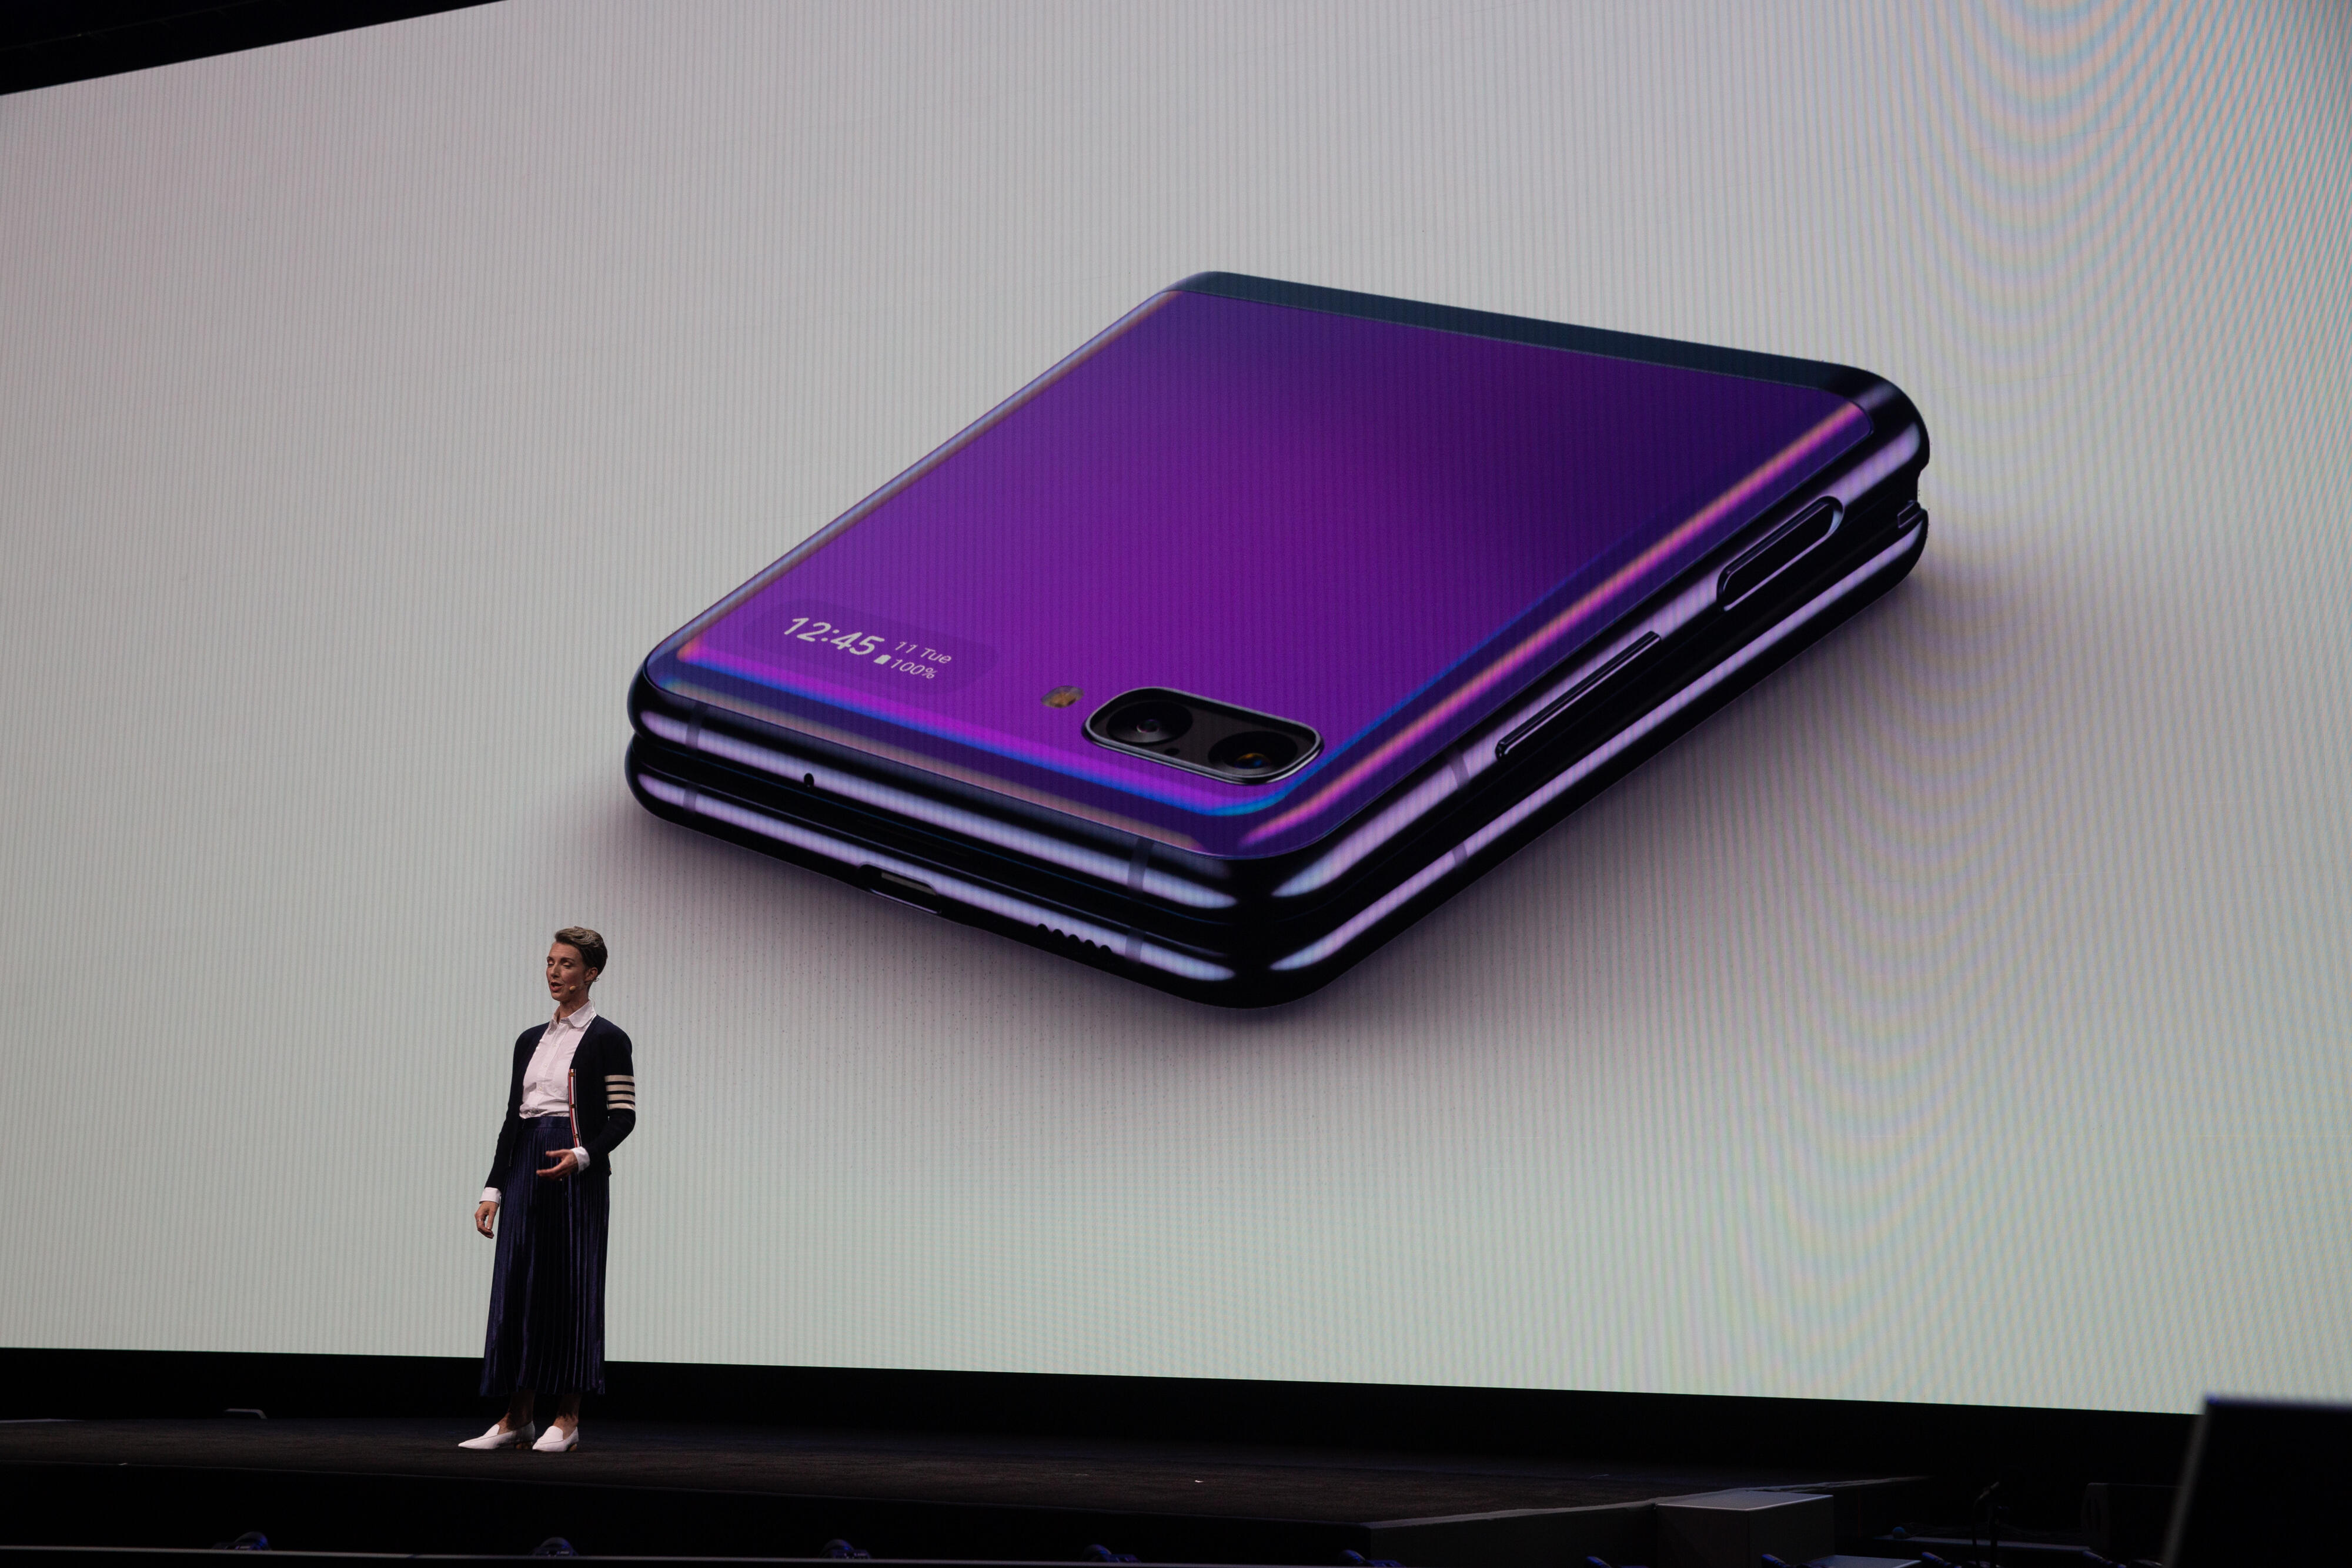 samsung-galaxy-z-flip-unveil-6